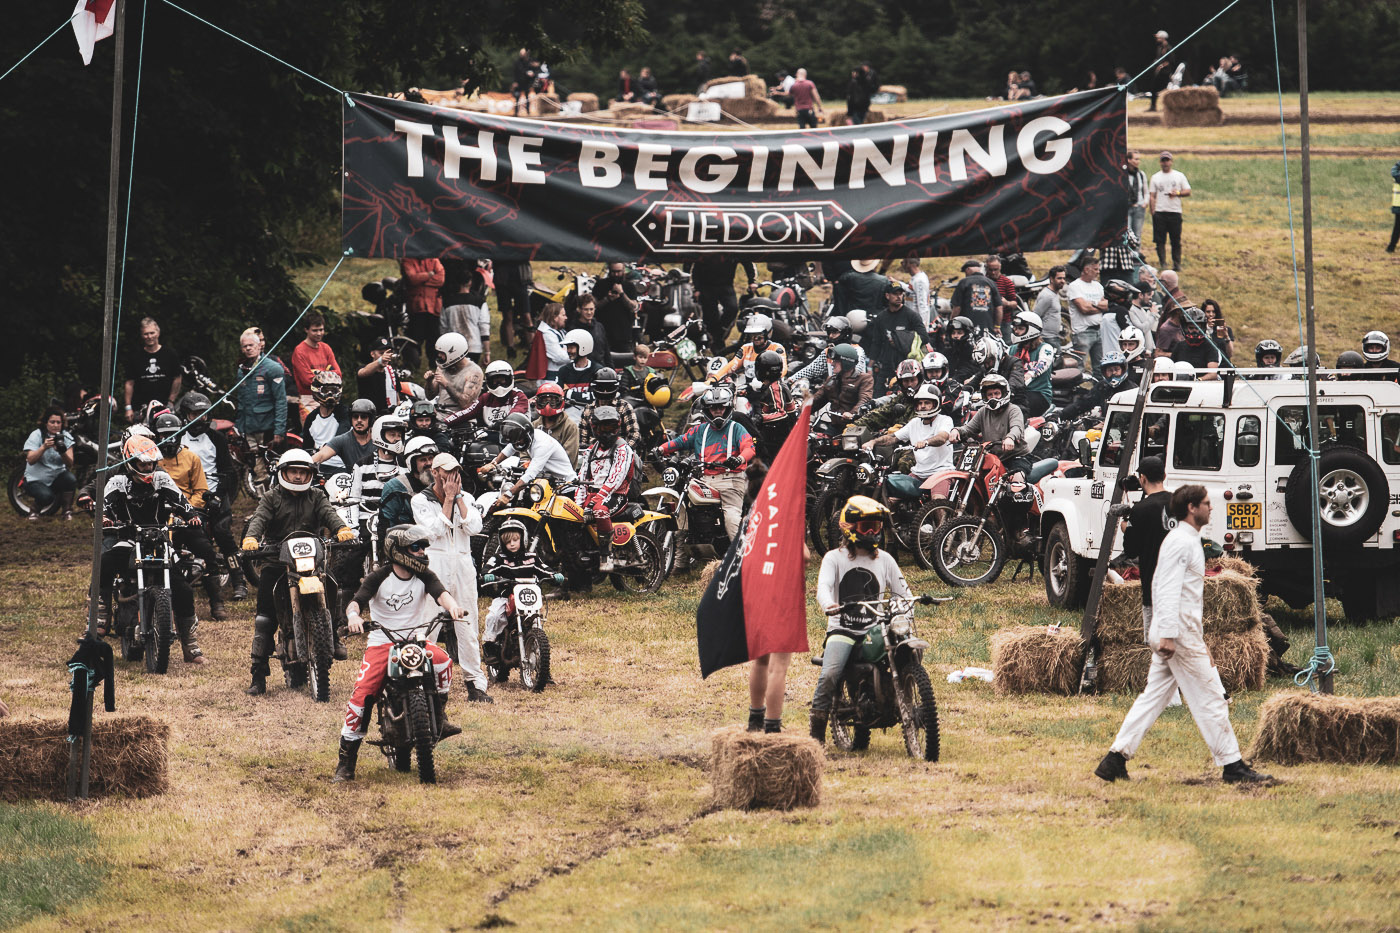 Hill Climb at the Malle Mile 2019